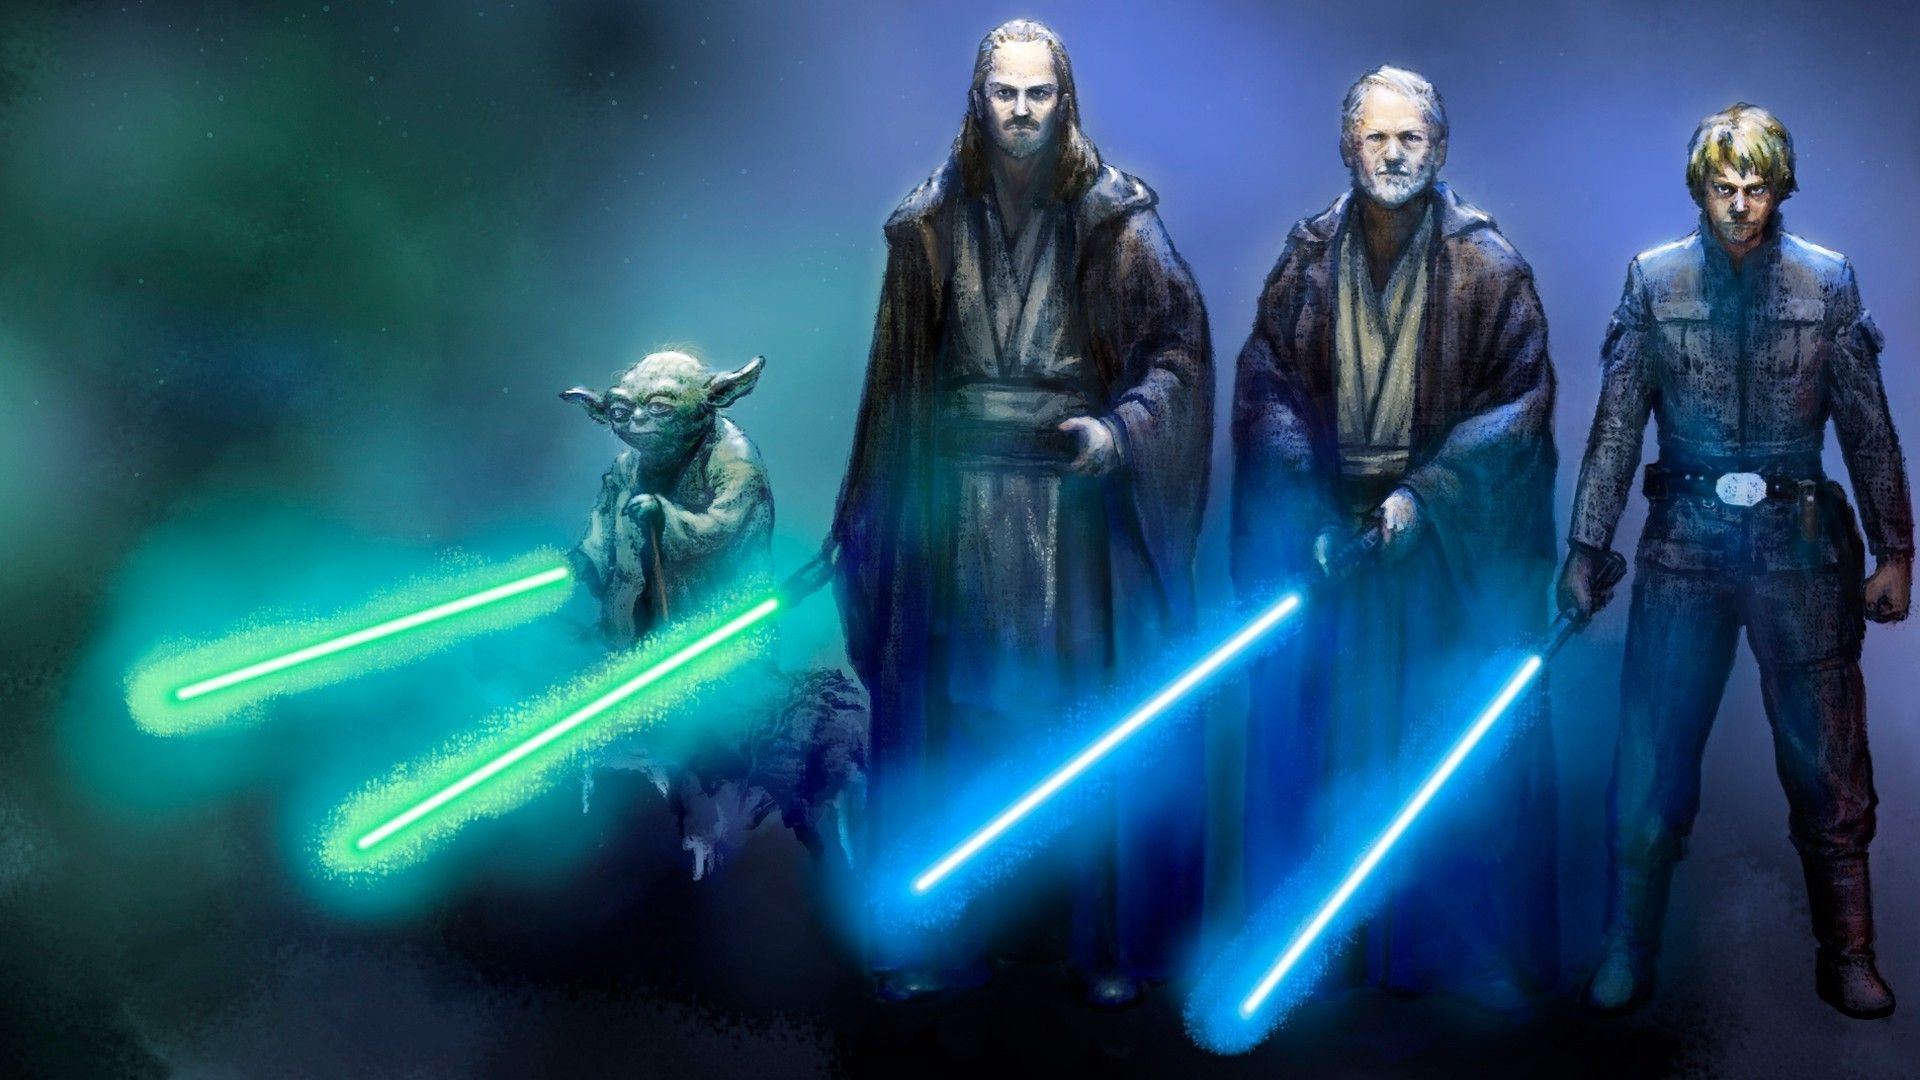 Epic Battle Wallpaper 1920 x 1080 Star Wars jedi HD